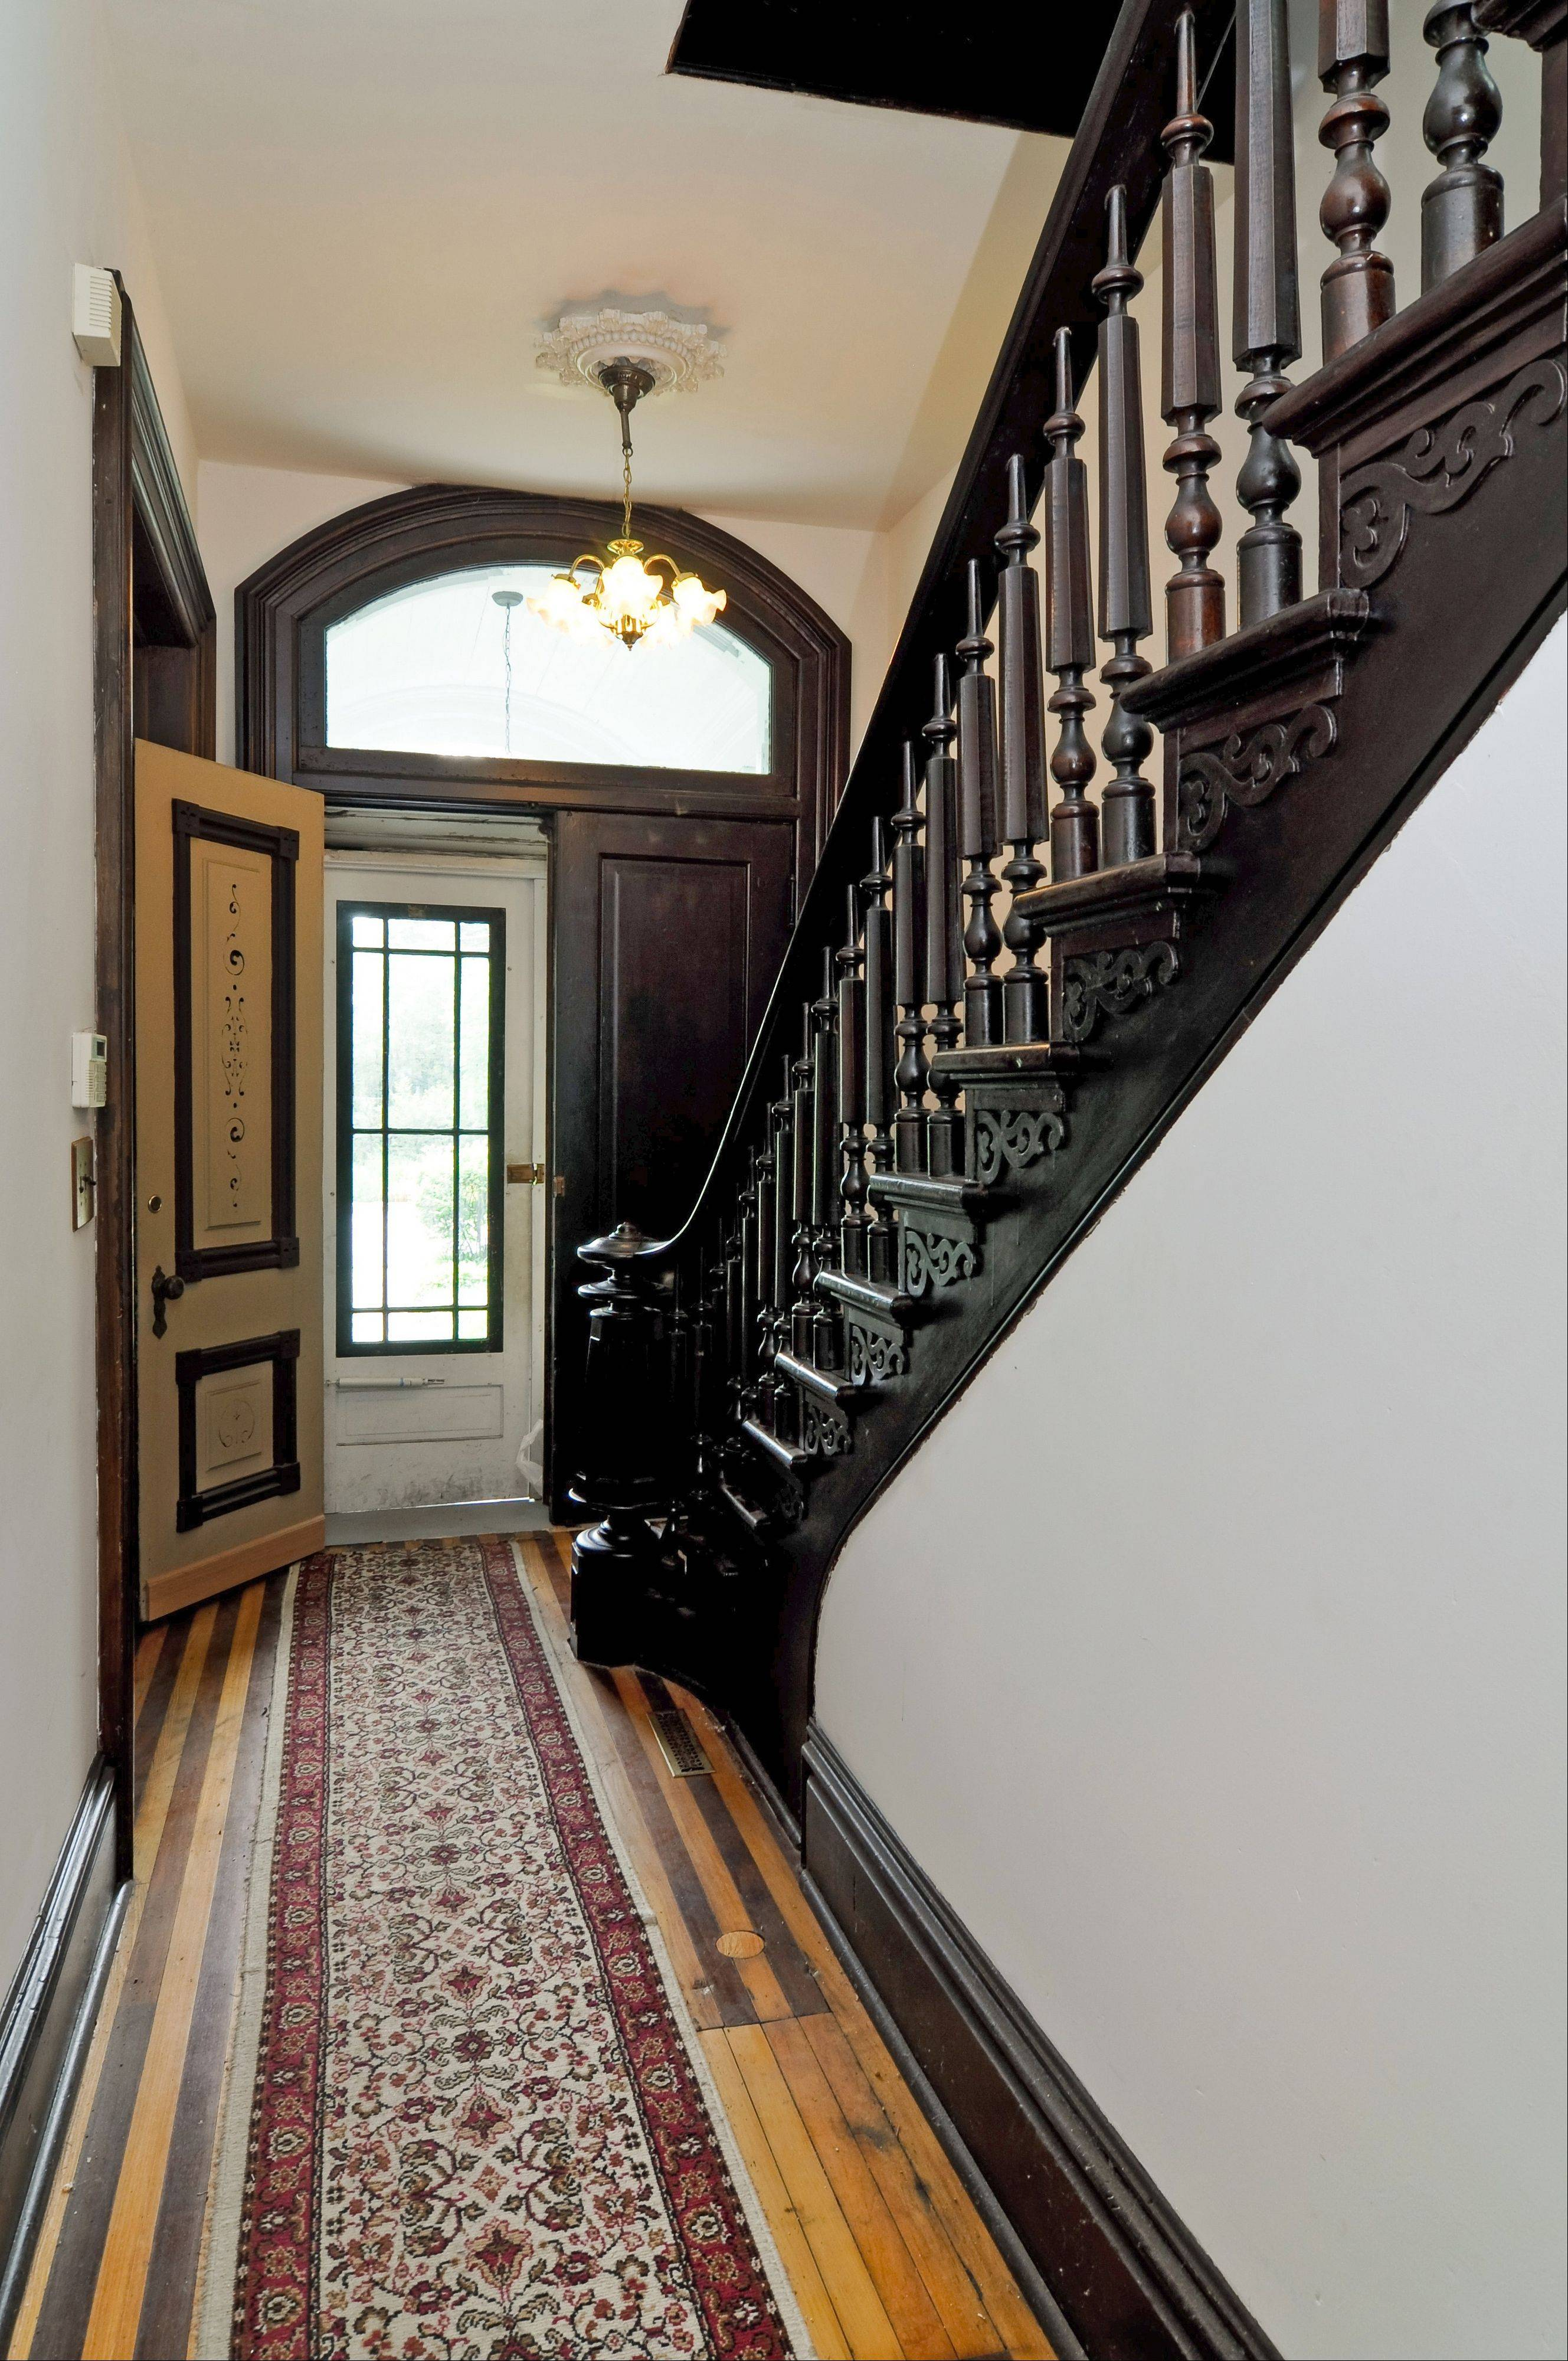 Craftsmanship can be seen in the woodwork throughout the Arlington Heights home.